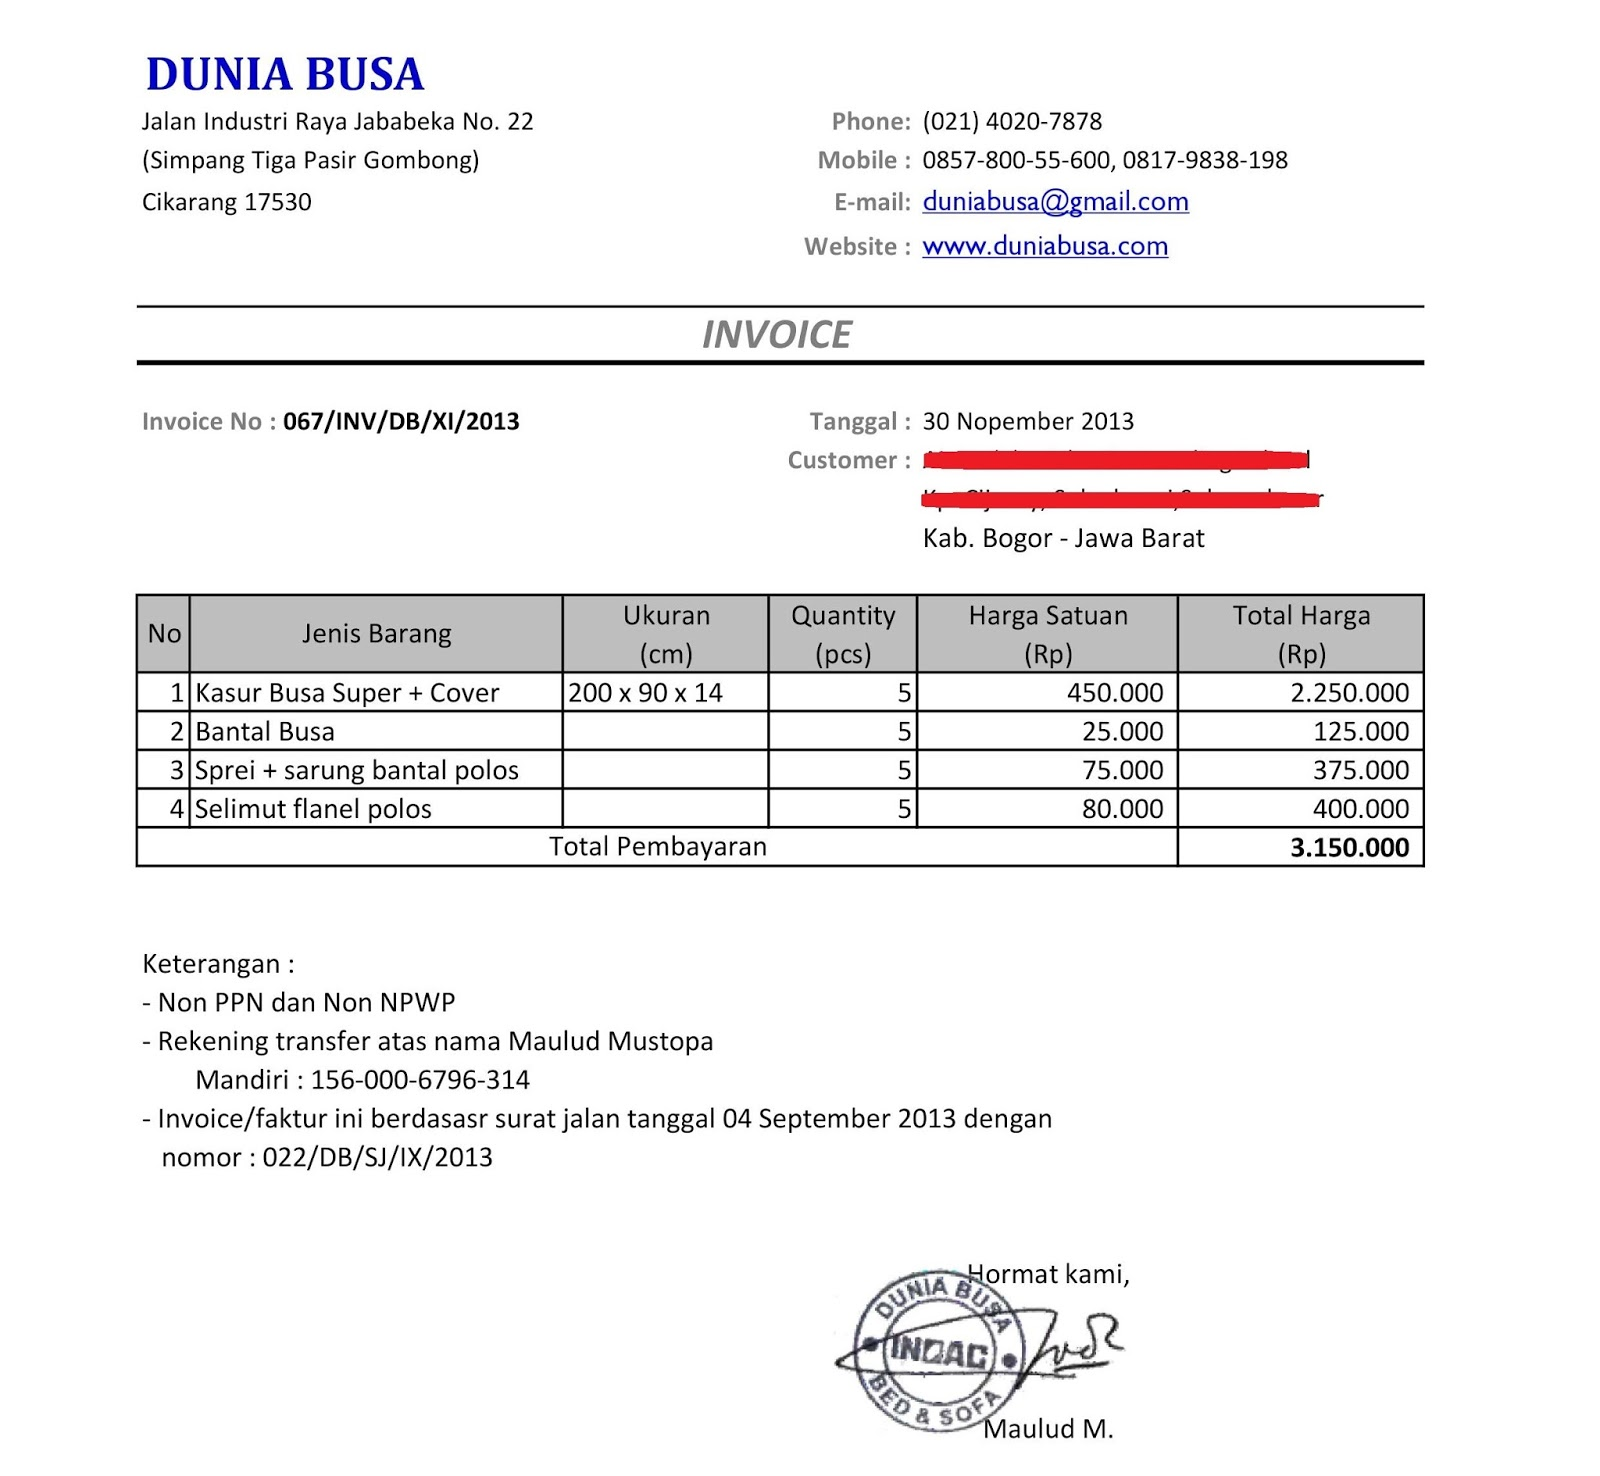 Coachoutletonlineplusus  Sweet Free Invoice Online  Create Invoice Online  Invoice Template  With Fetching Contoh Format Invoice Atau Surat Tagihan  Brankas Arsip  Free Invoice Online With Alluring Receipt Document Template Also Acknowledge The Receipt Of In Addition Receipt Of Payments And Acknowledgement Receipt Meaning As Well As Making A Receipt In Word Additionally Sample Letter Of Receipt From Sklepco With Coachoutletonlineplusus  Fetching Free Invoice Online  Create Invoice Online  Invoice Template  With Alluring Contoh Format Invoice Atau Surat Tagihan  Brankas Arsip  Free Invoice Online And Sweet Receipt Document Template Also Acknowledge The Receipt Of In Addition Receipt Of Payments From Sklepco